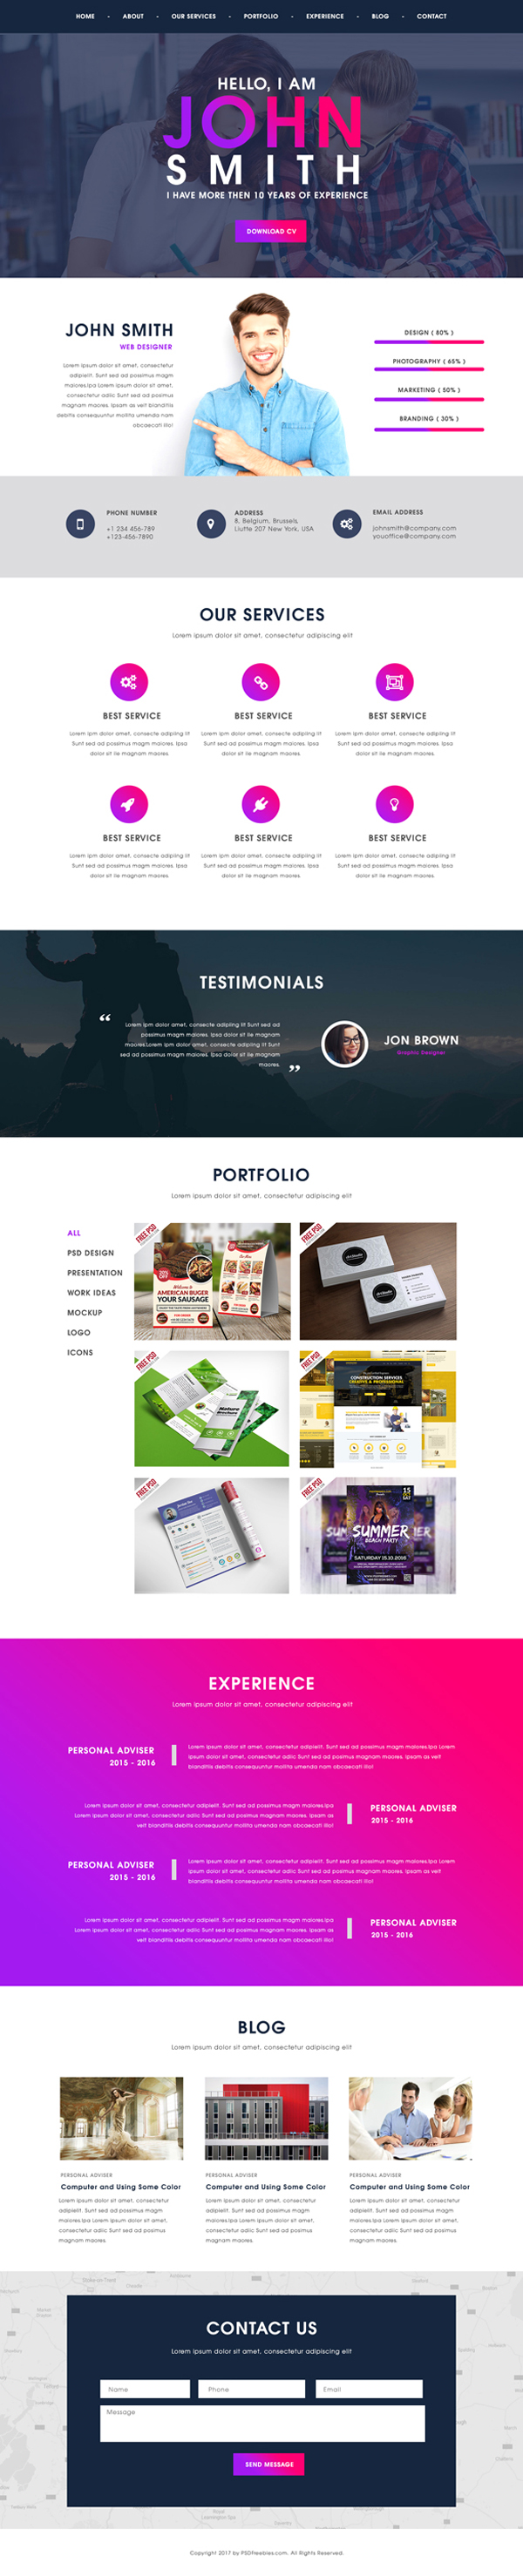 Free Creative One Page Portfolio Website Template PSD